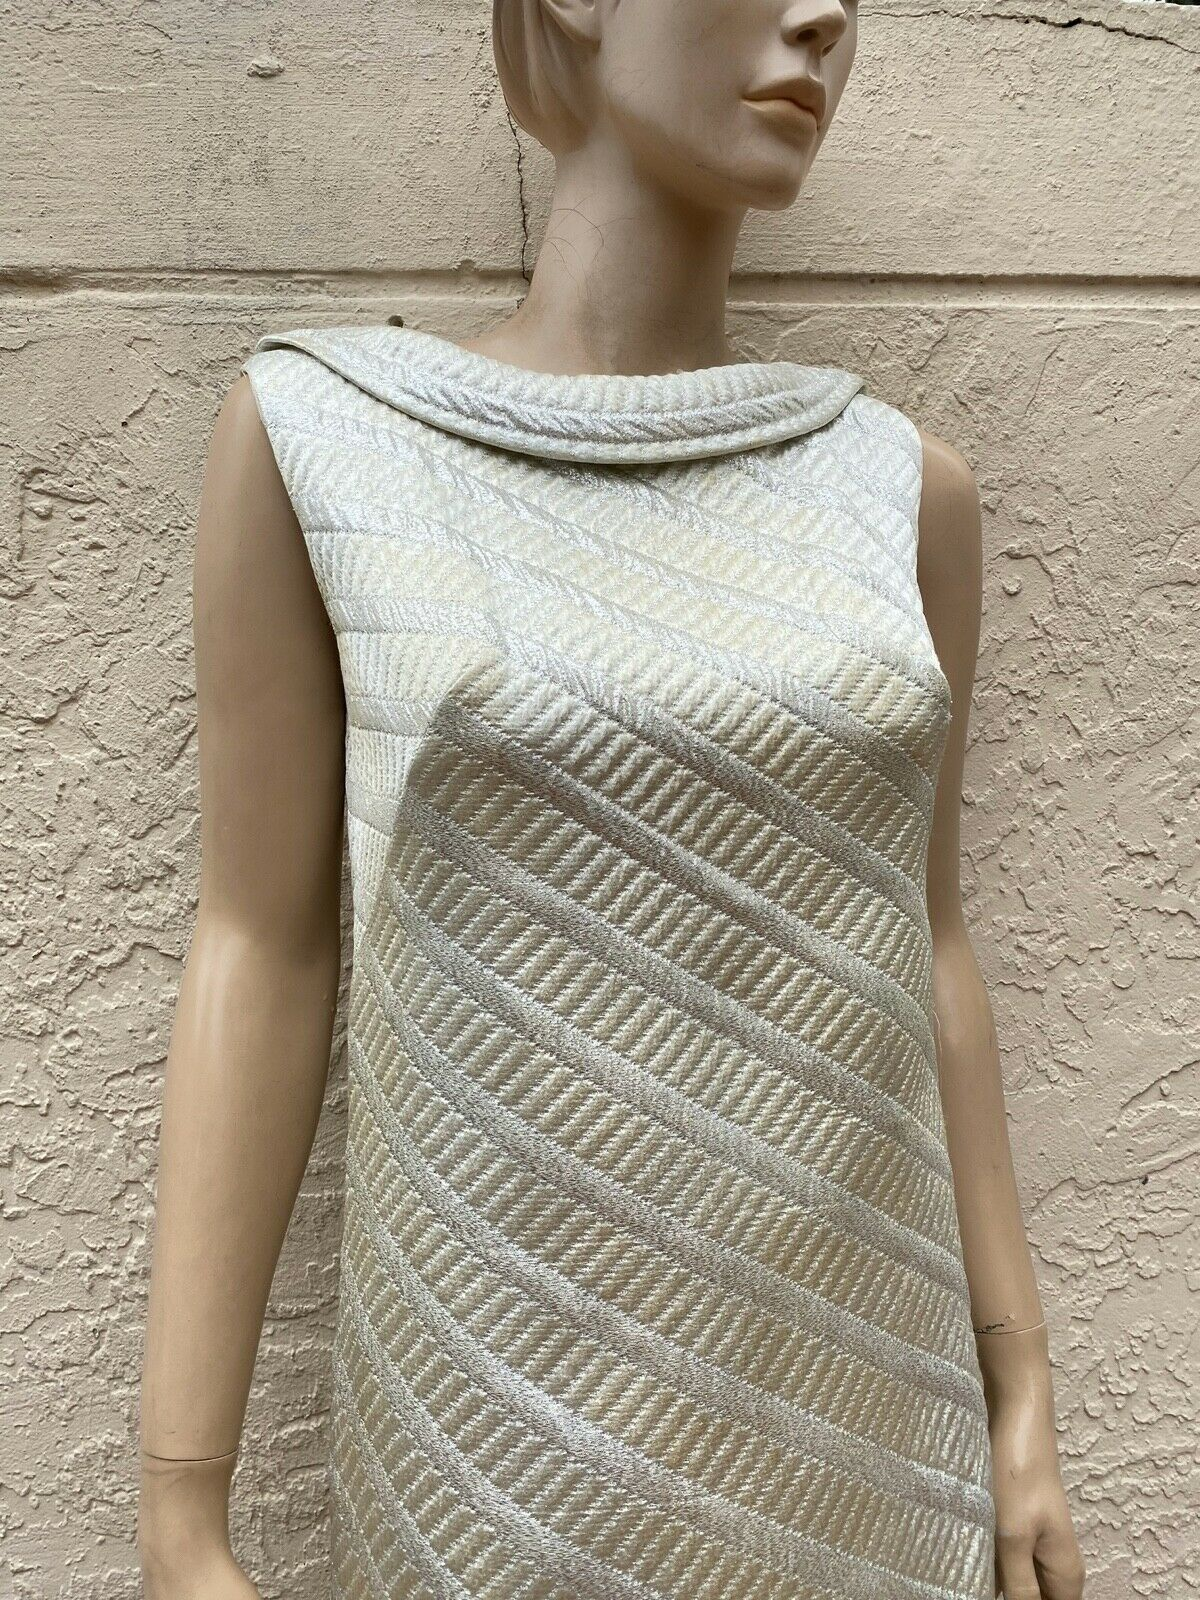 70's NELLY DE GRAB JACKIE-O METALLIC SILVER LONG … - image 2